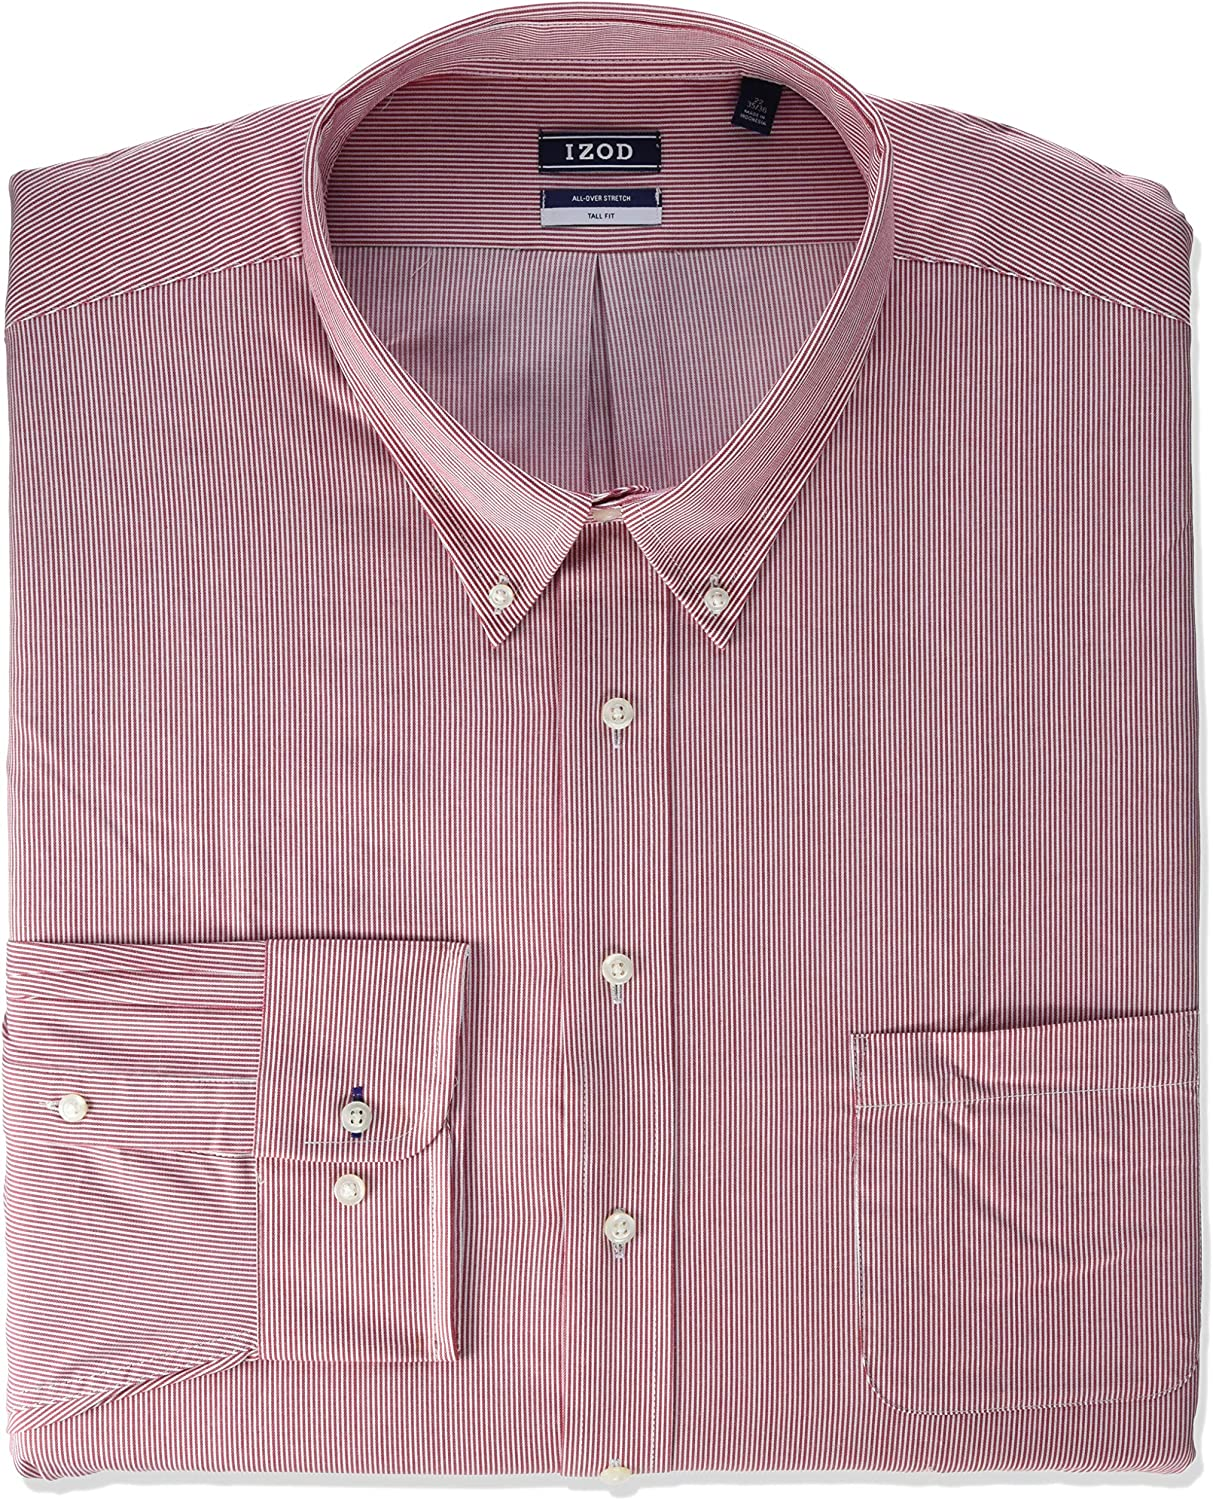 IZOD Men's Size Fit Bombing Daily bargain sale free shipping Dress Shirt Tall and Stretch Big Stripe